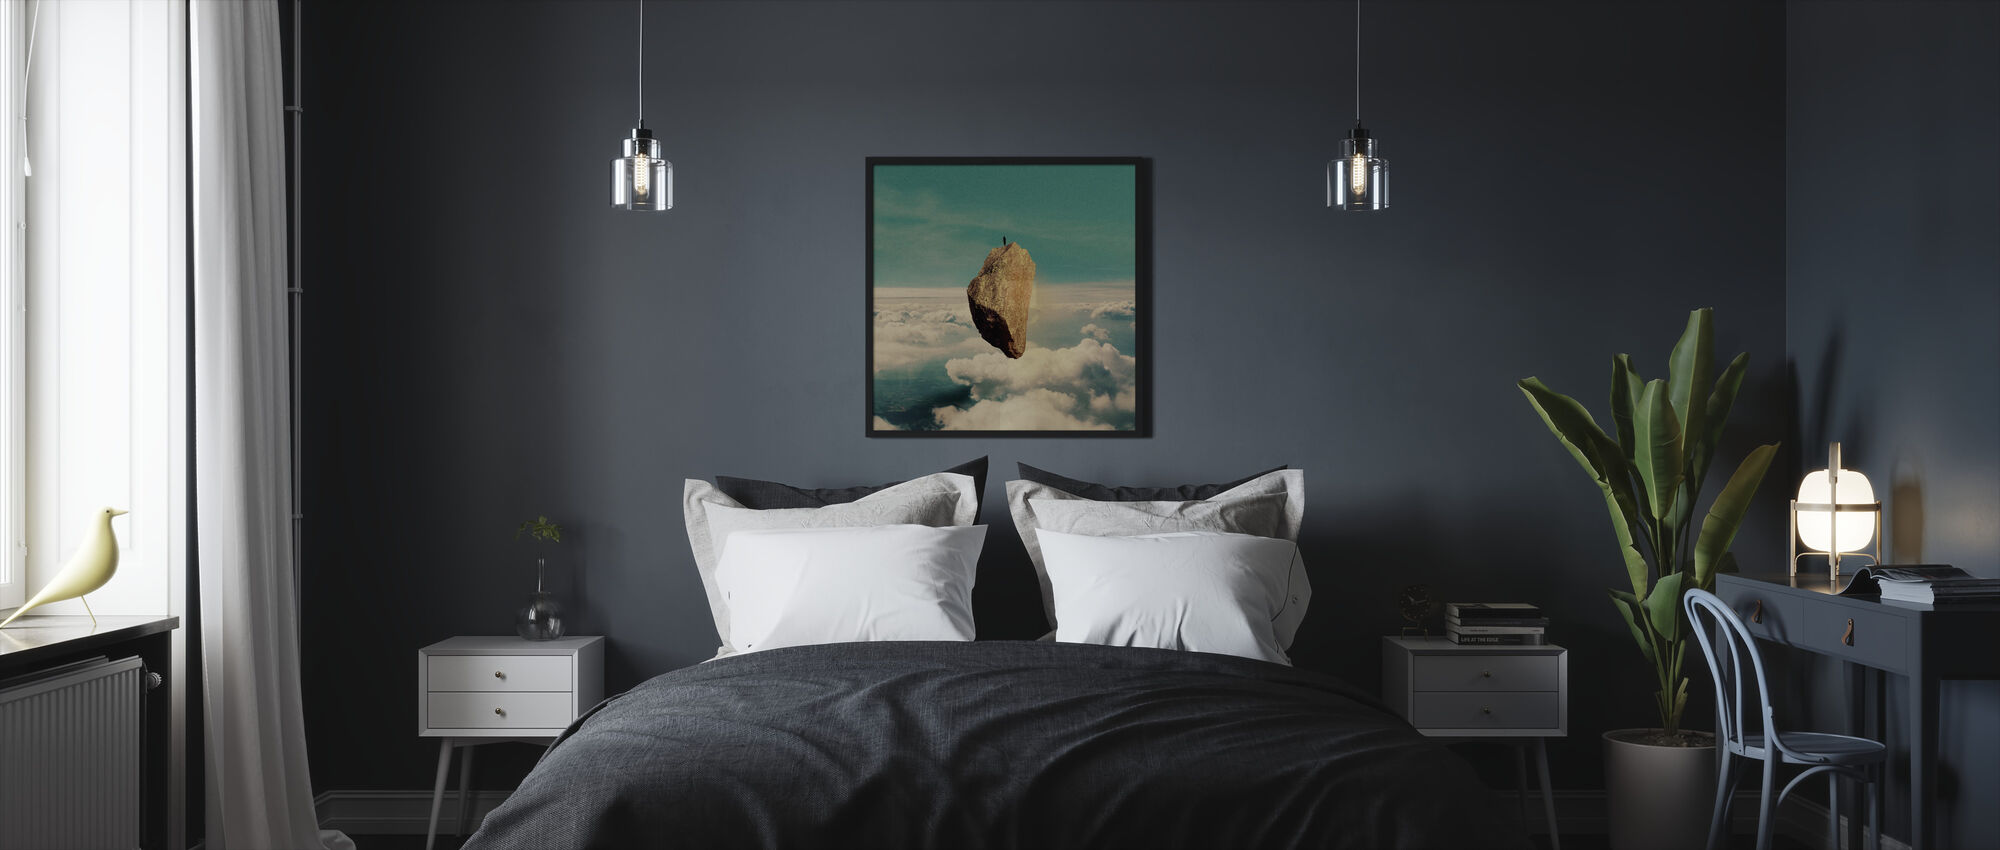 The Island - Framed print - Bedroom